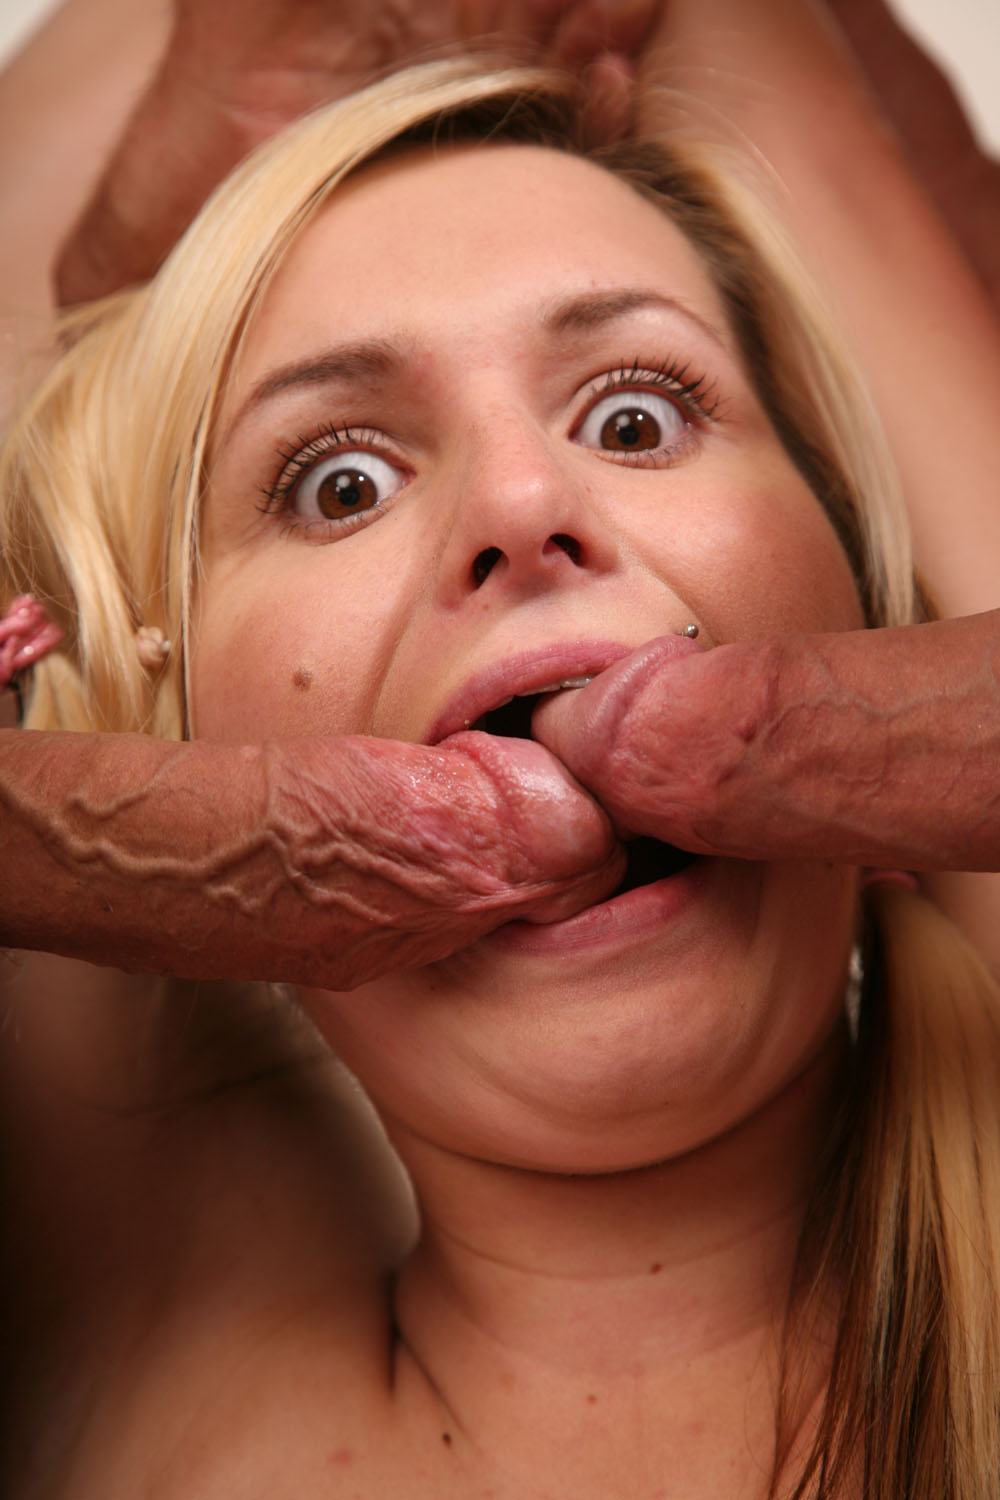 Cock in mouth picture thumbnails pornhub wife